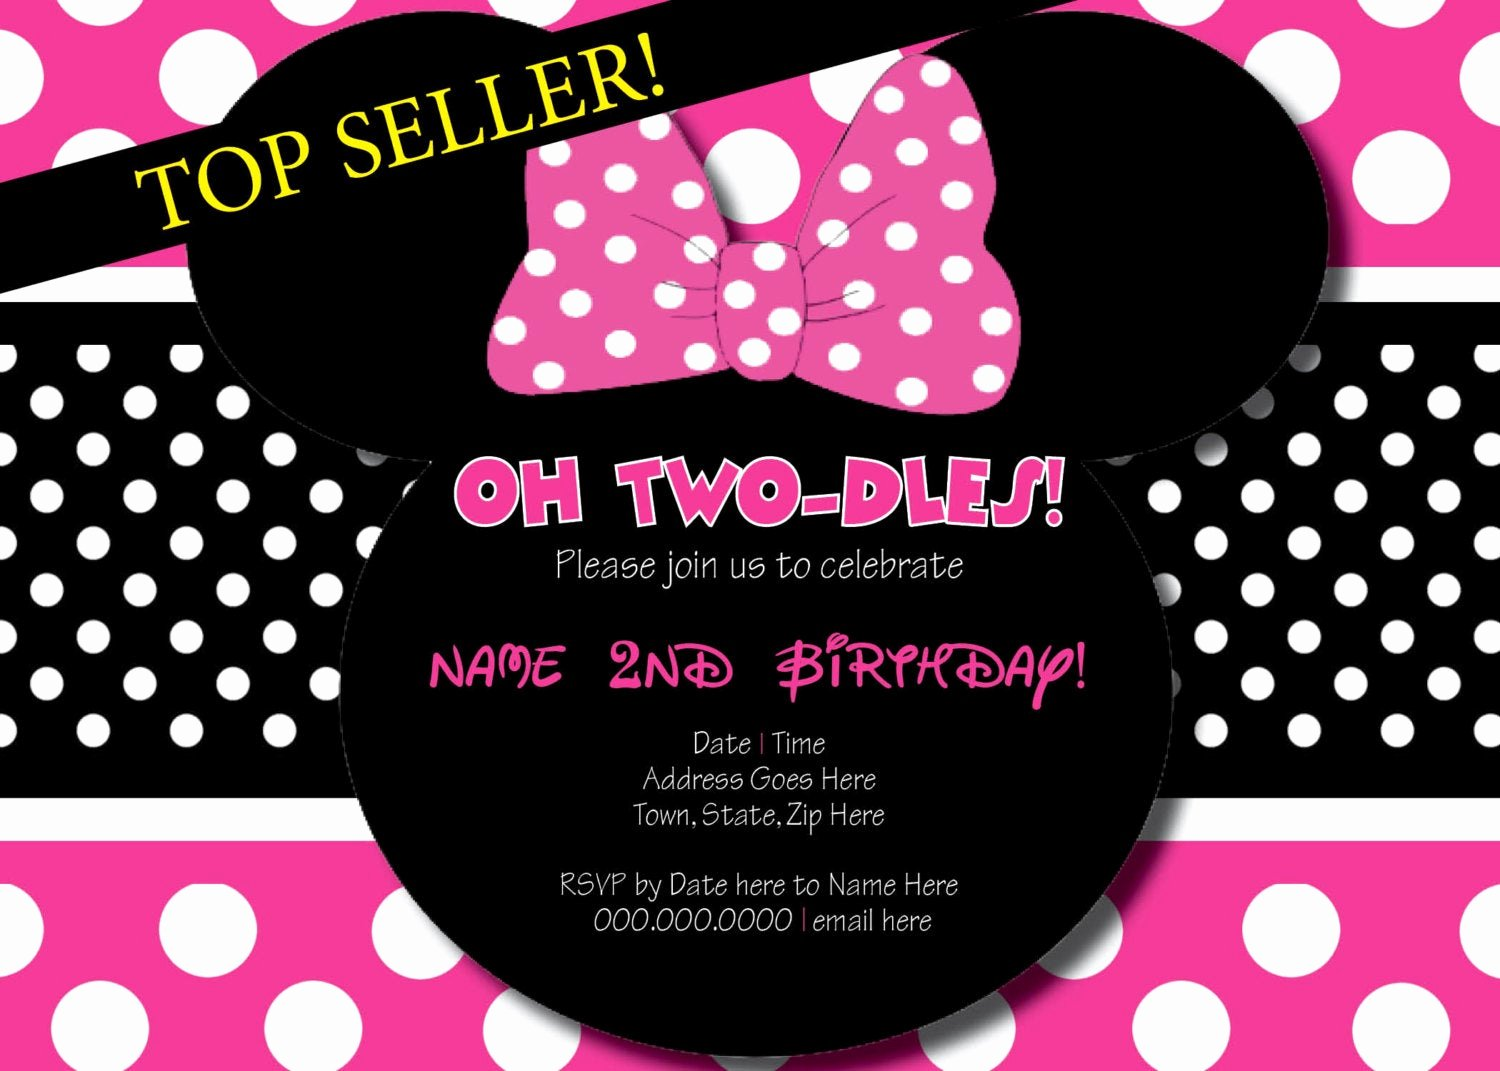 Minnie Mouse Birthday Invitations Elegant Oh Two Dles Minnie Mouse Birthday Invitation Printing